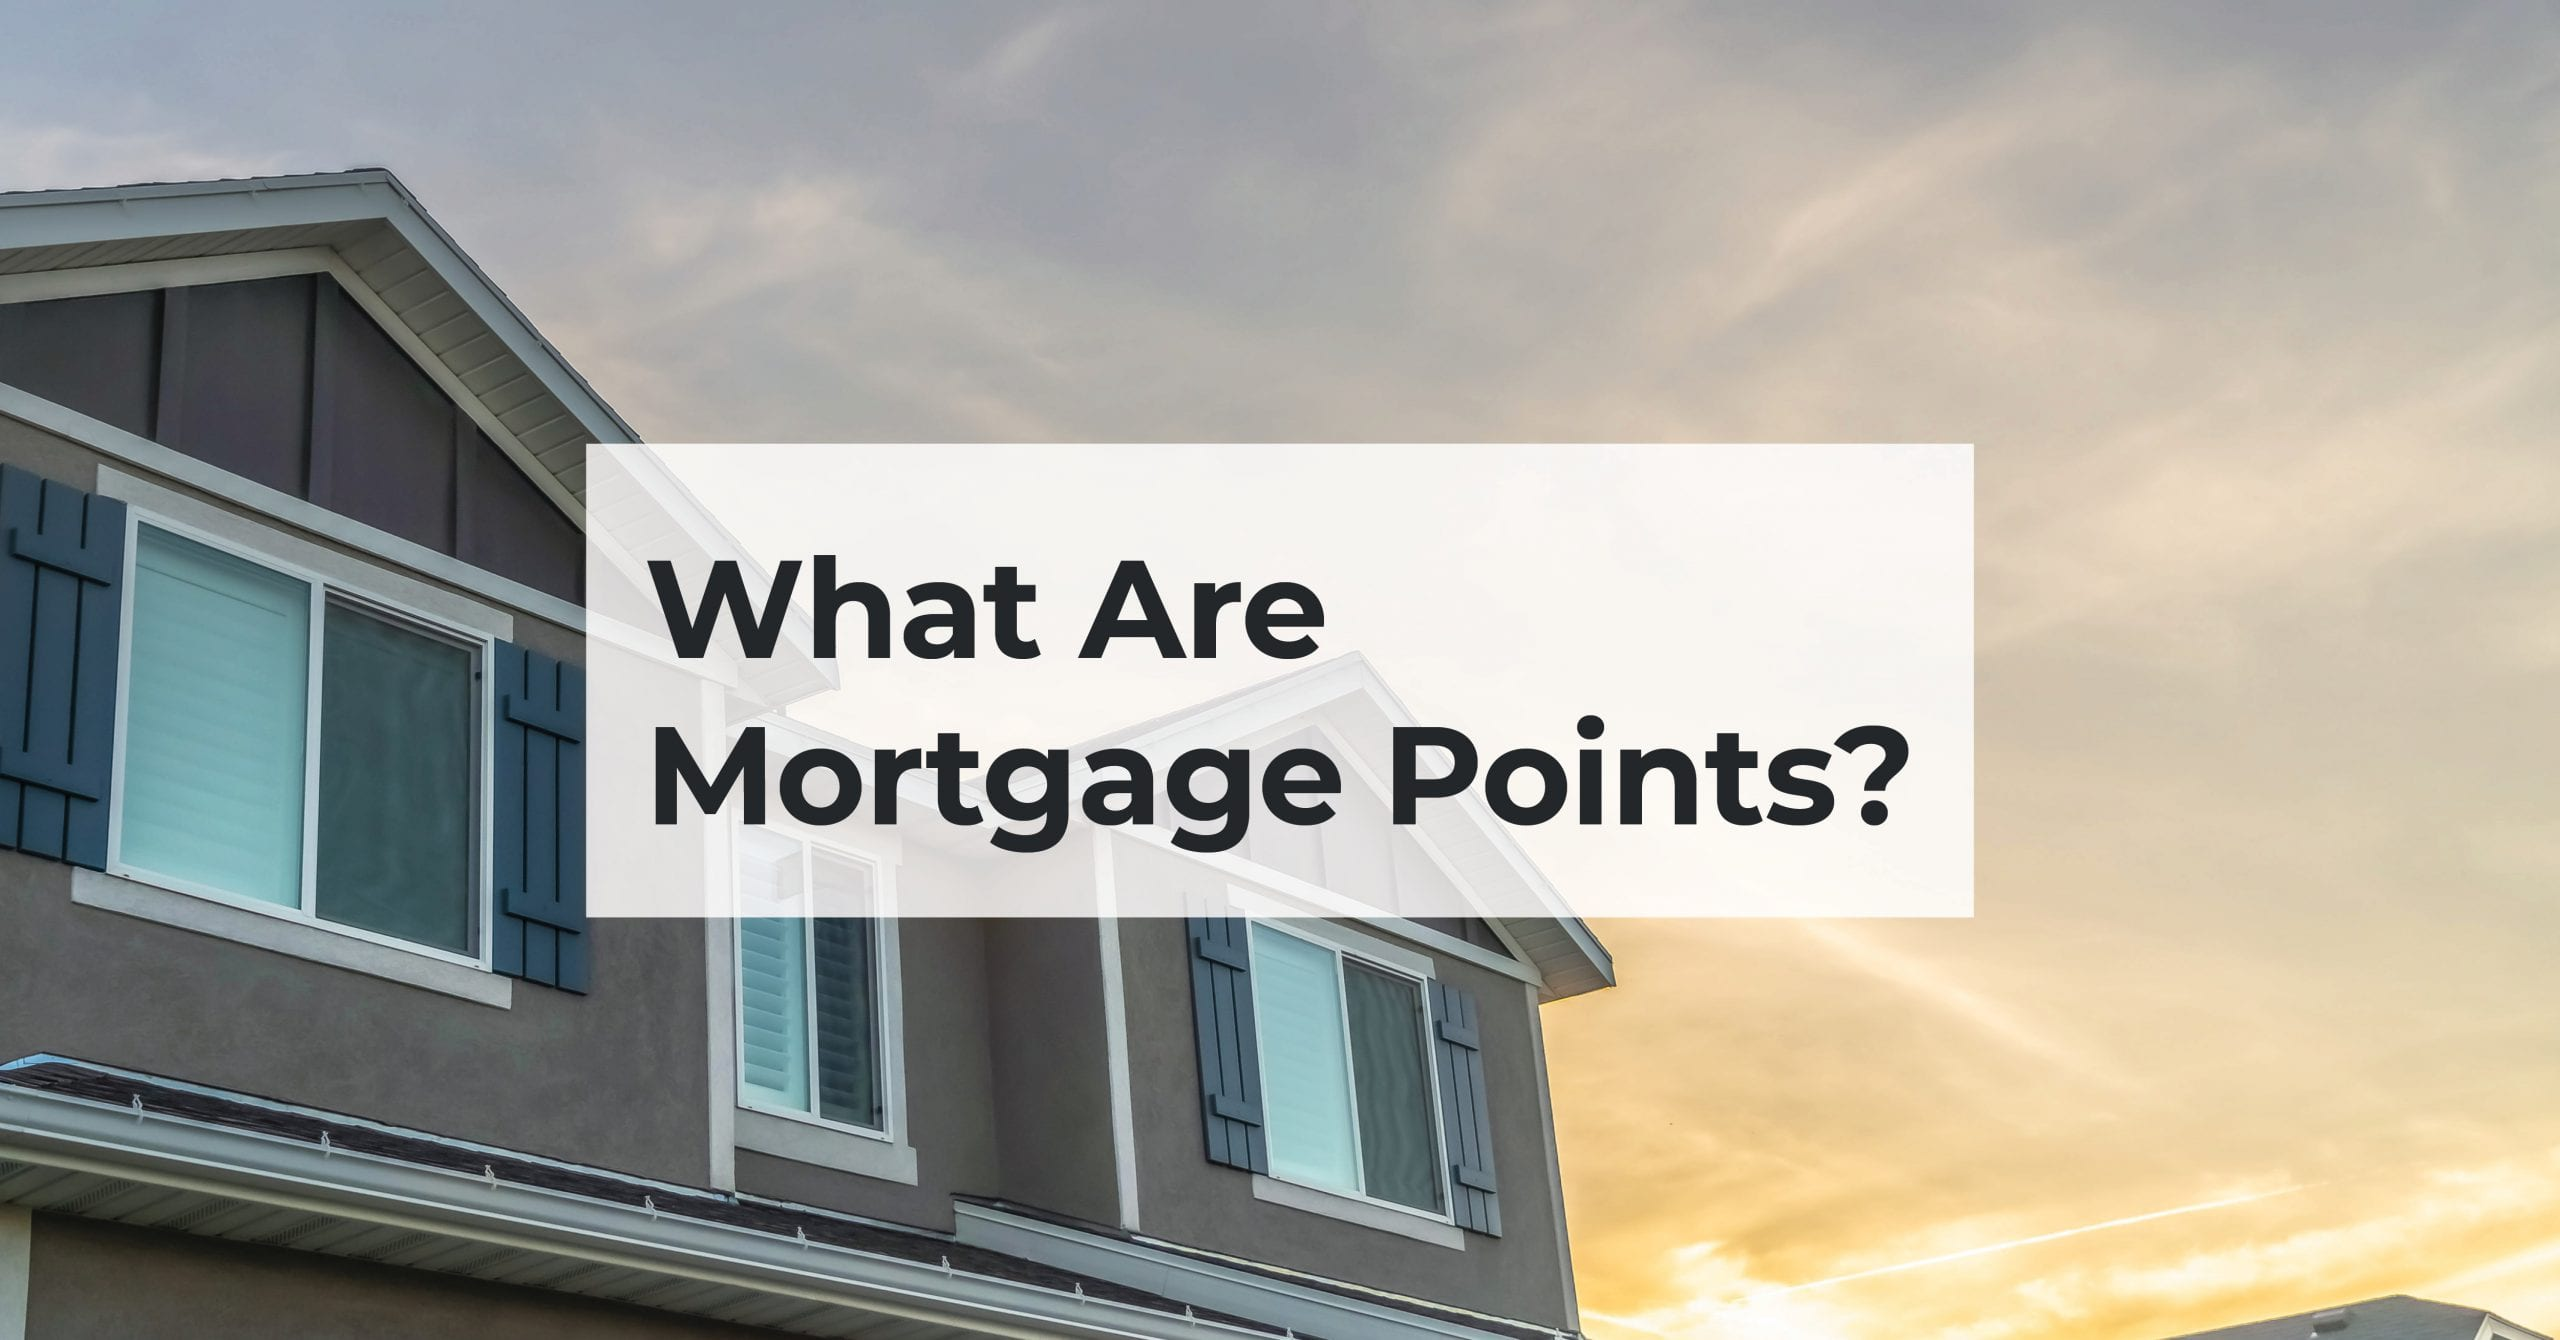 What are mortgage points?